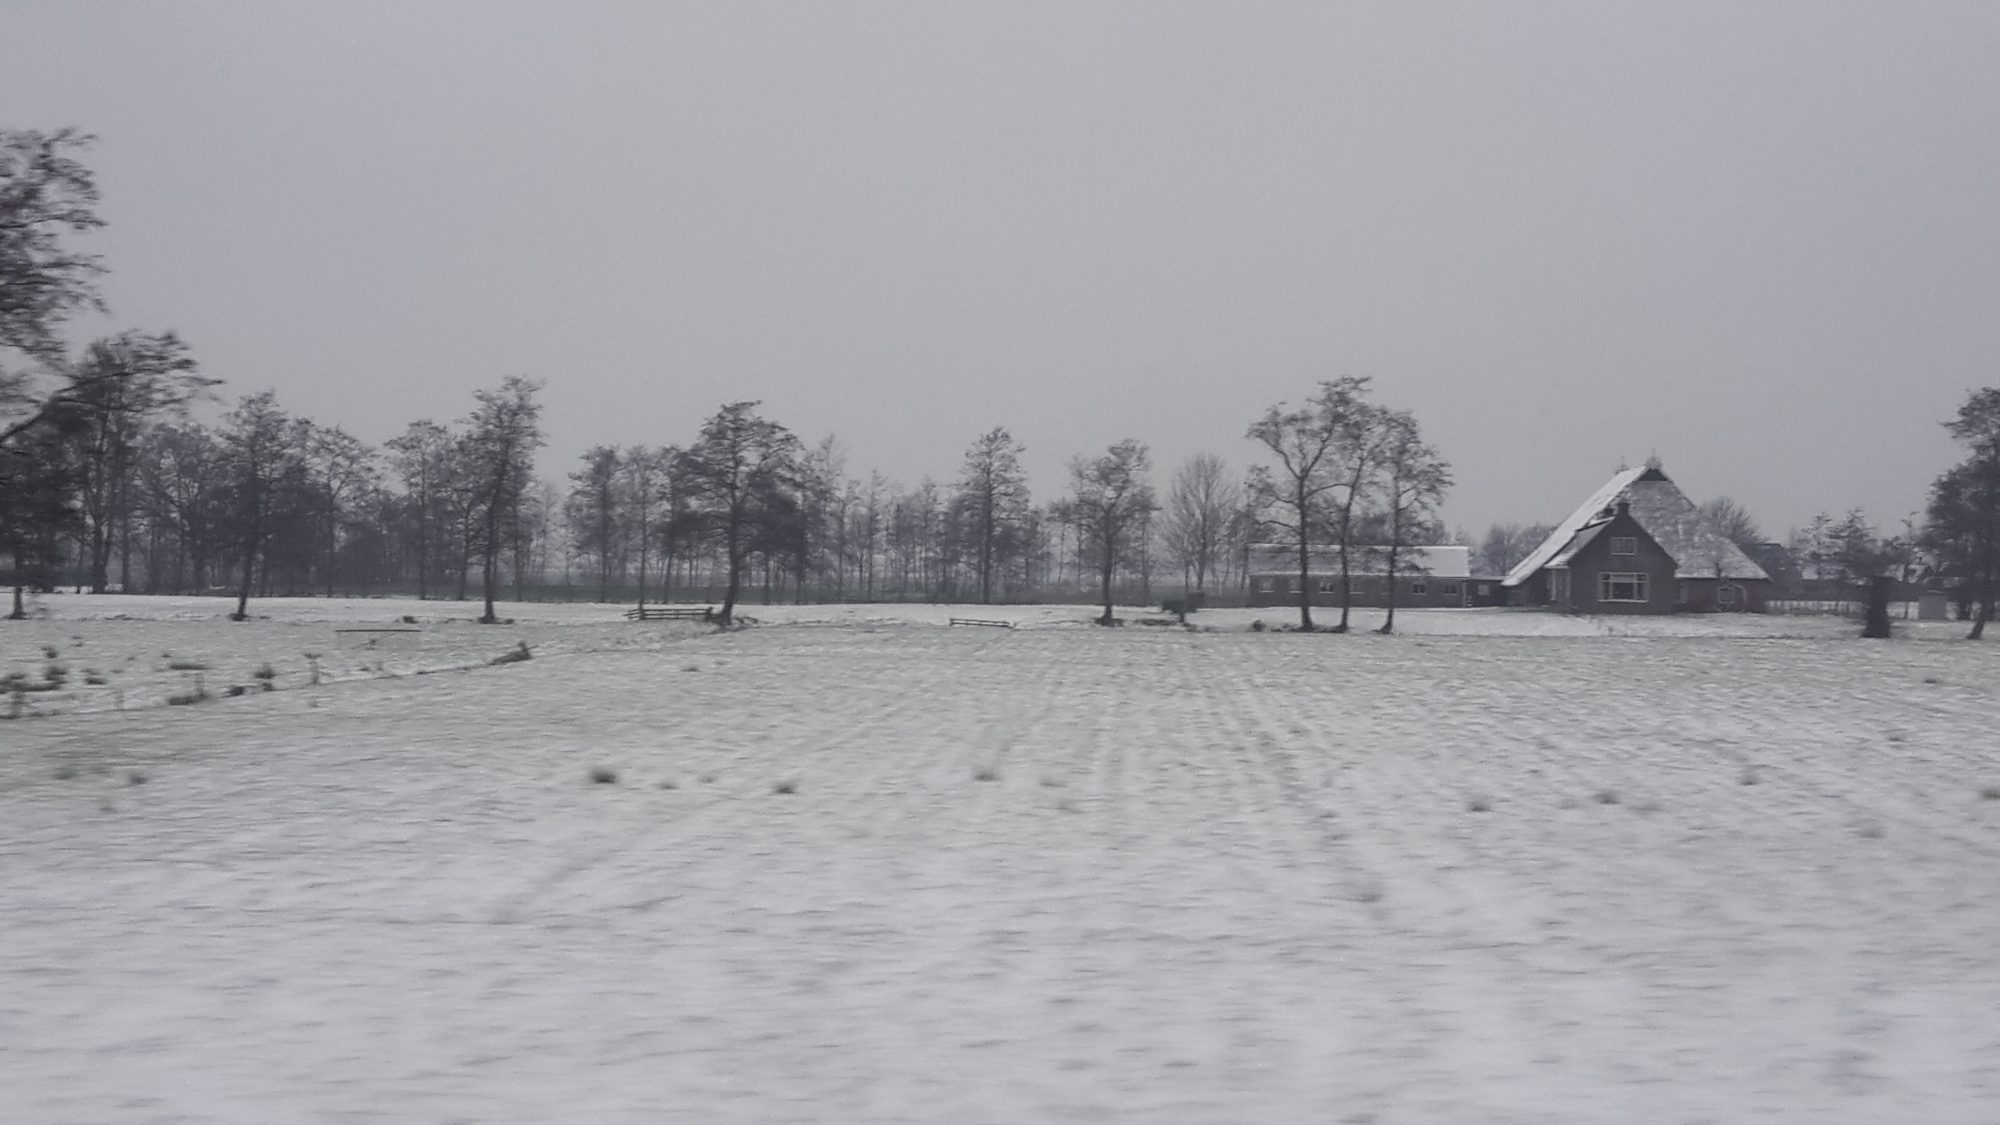 somewhere on my commute between Groningen and Leeuwarden after a dusting of snow